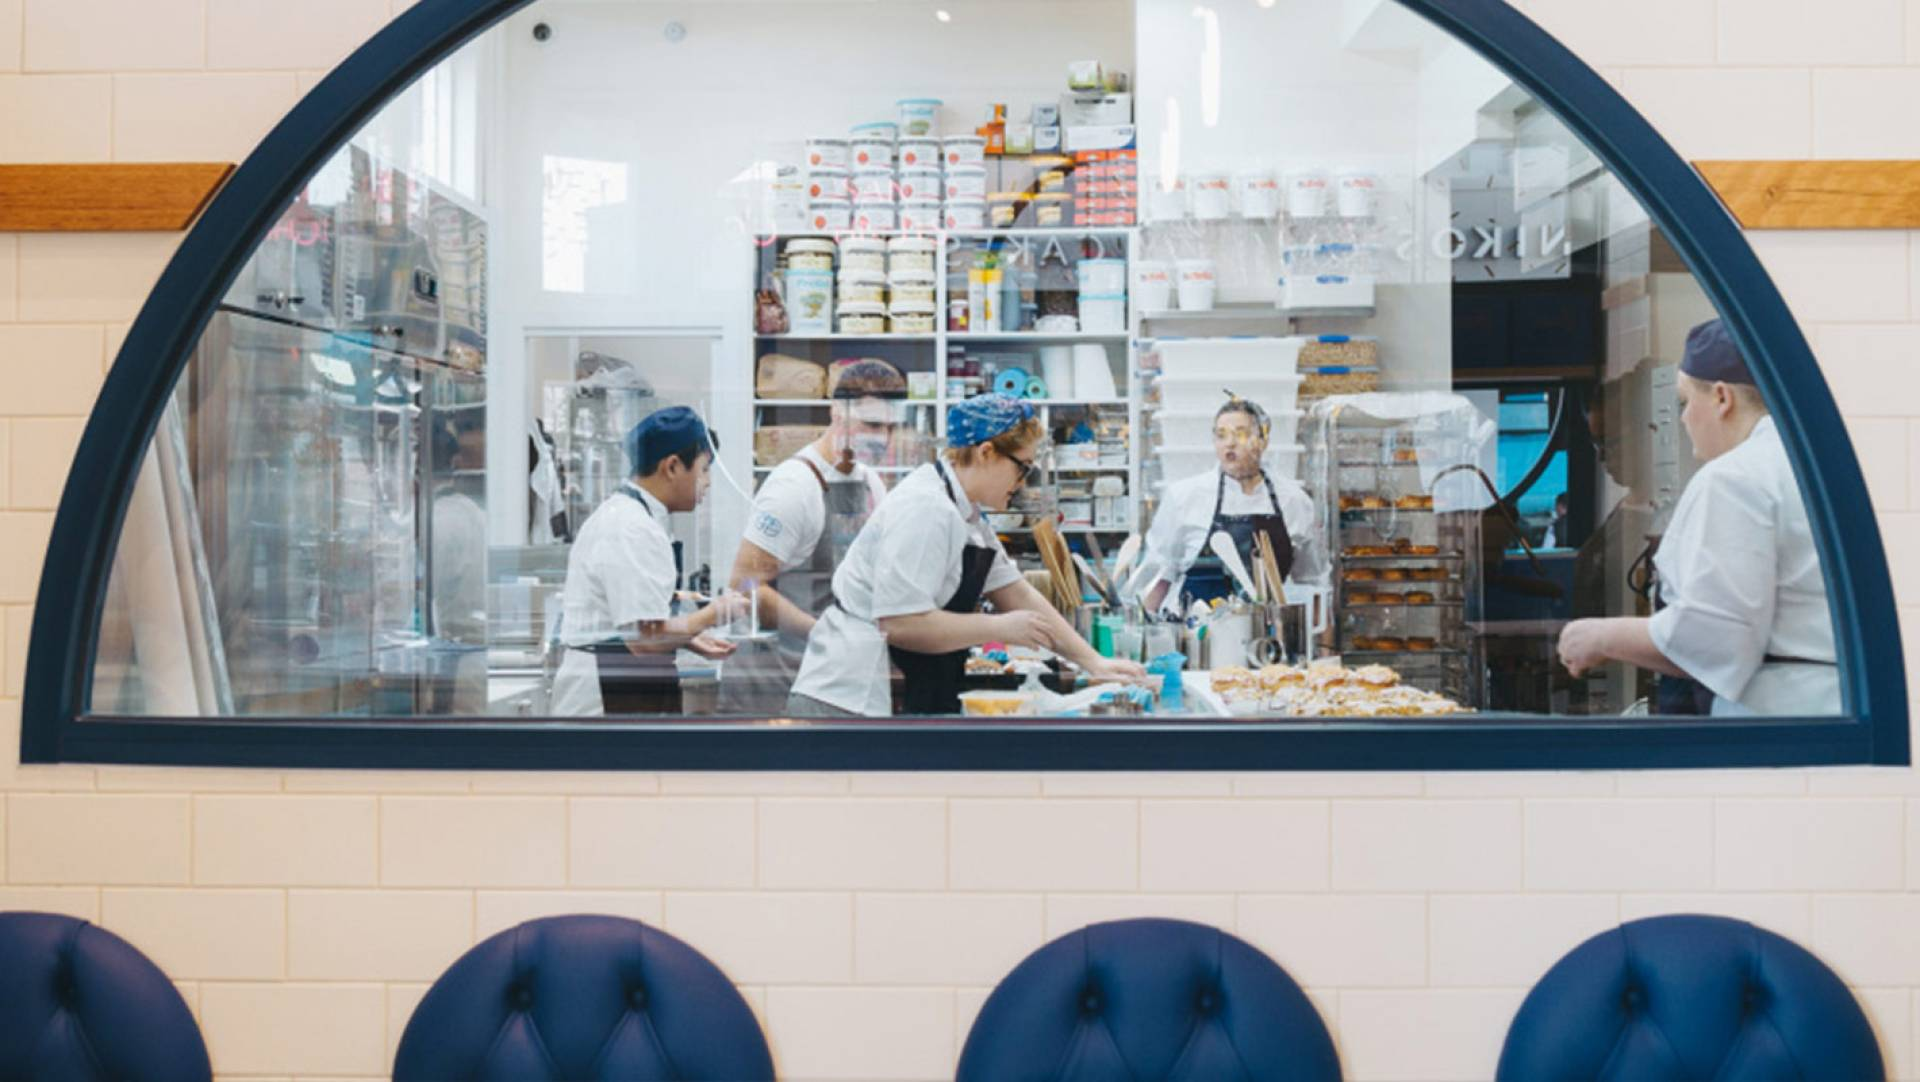 Cafe Design Melbourne - The Oakleigh Doughnut Co